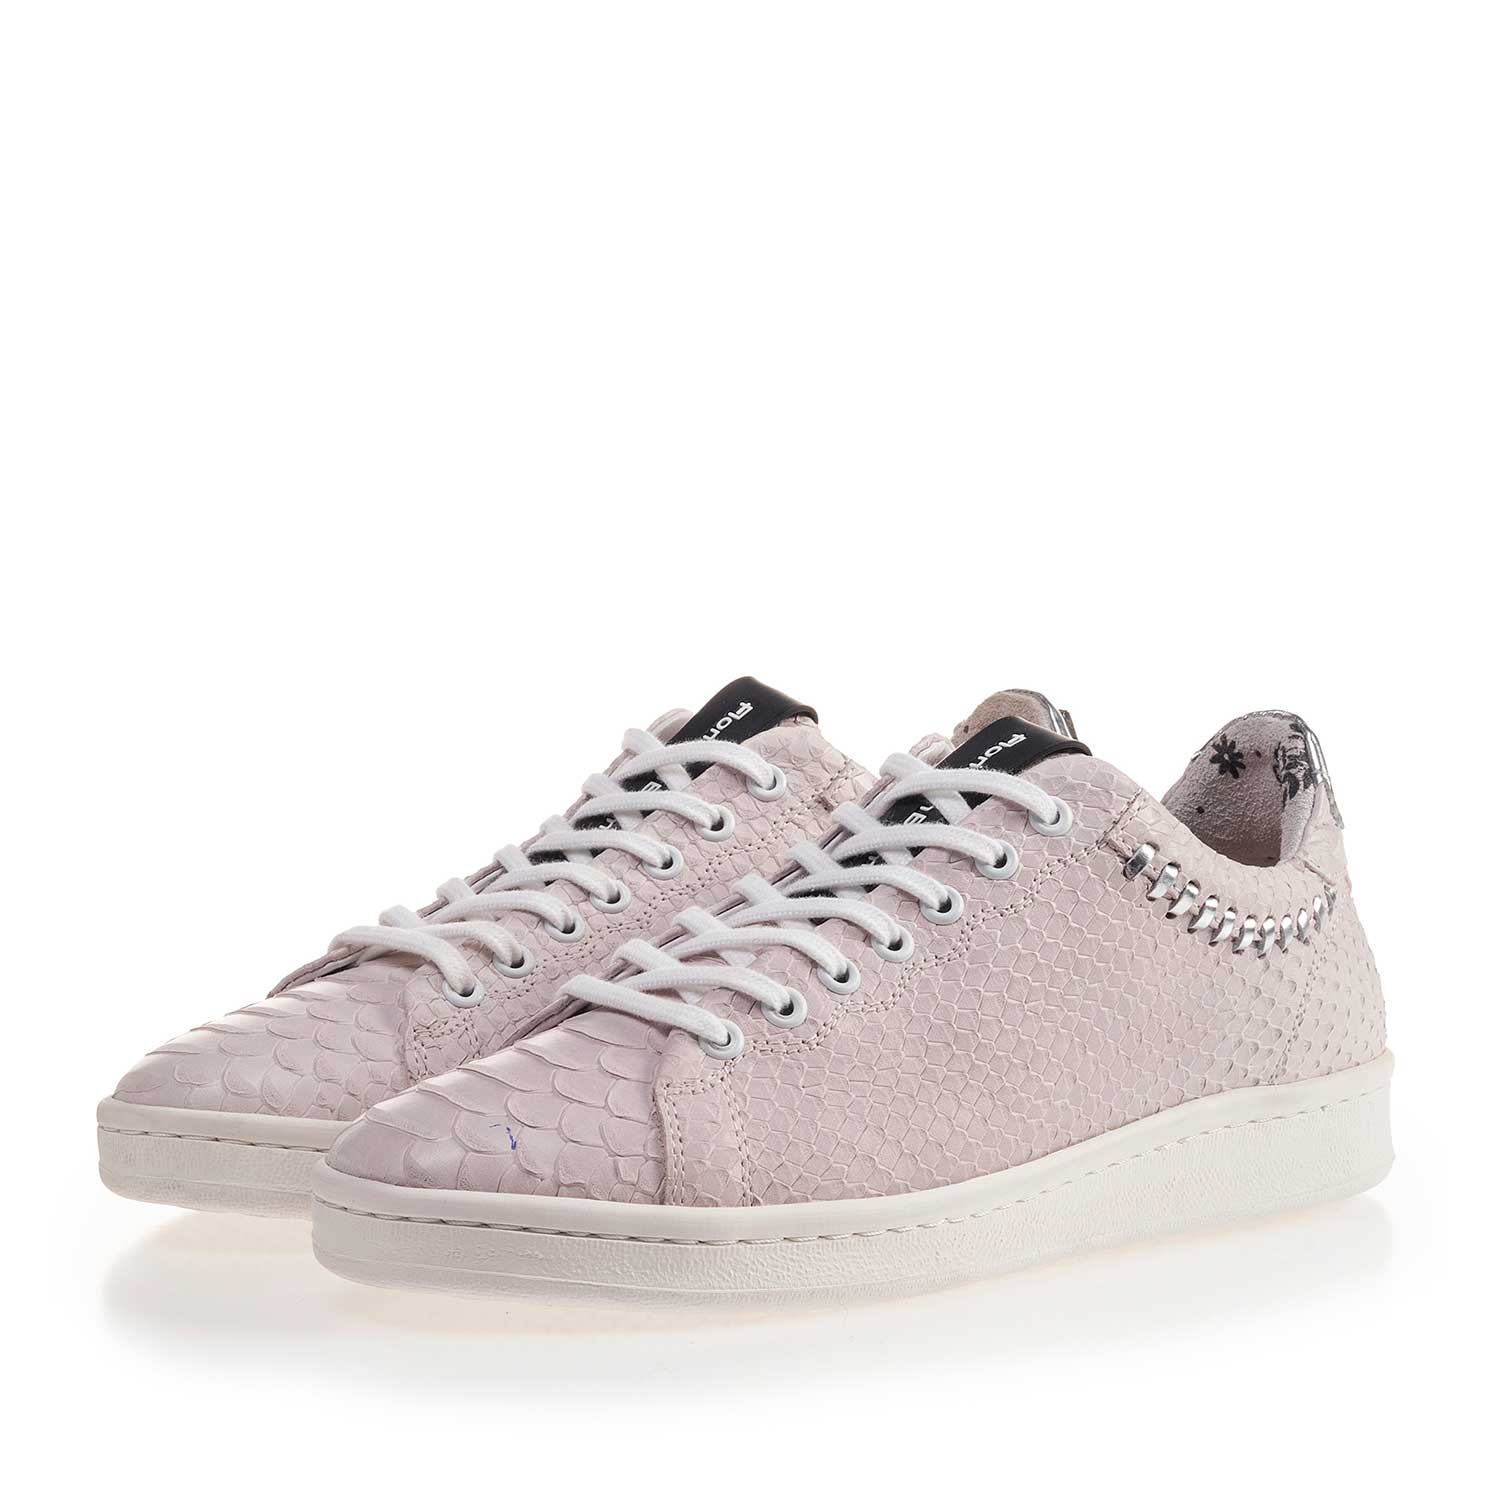 85251/03 - Light pink nubuck leather sneaker with snake print